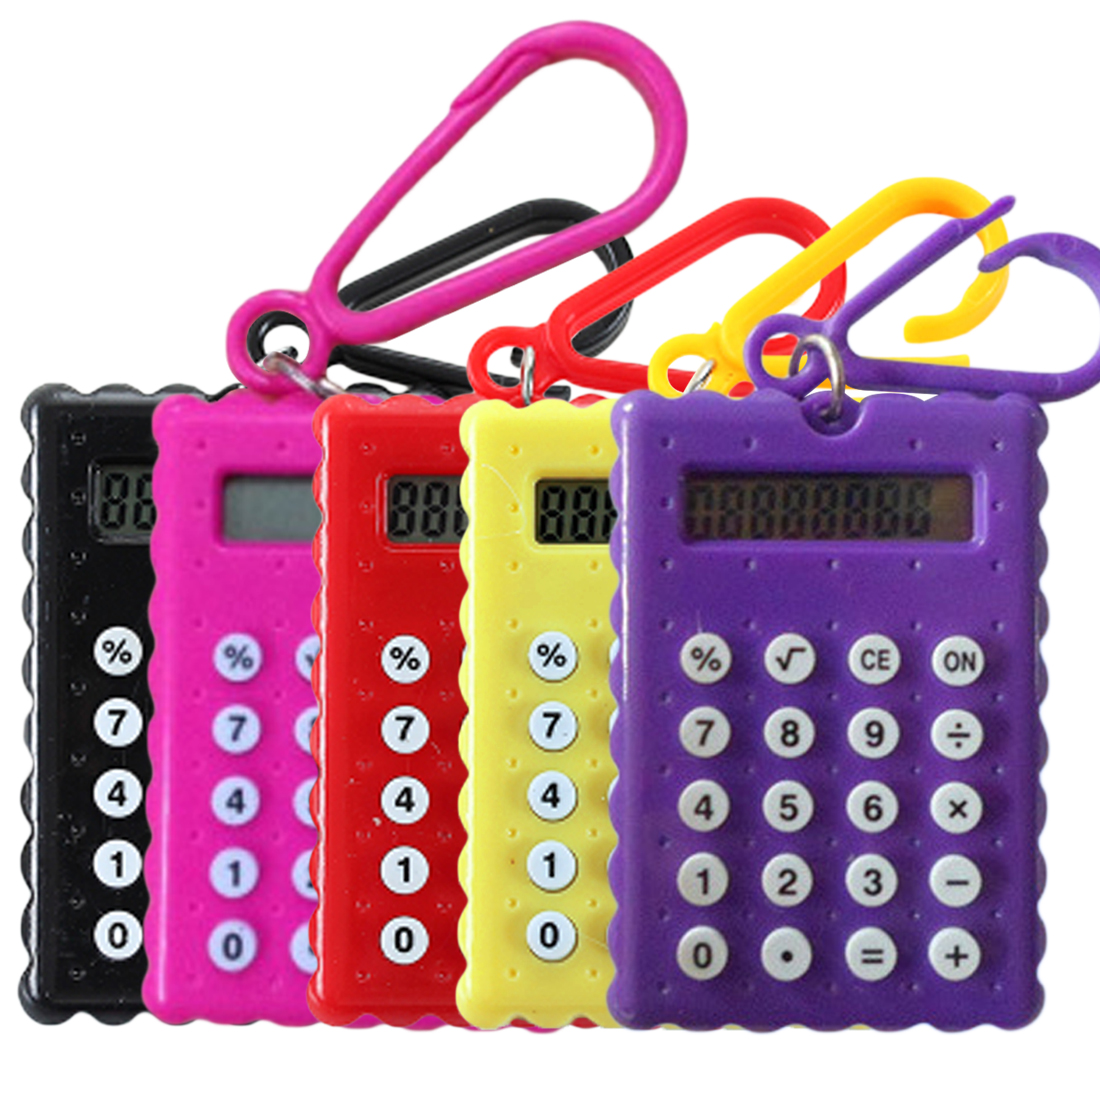 Noyokere Student Mini Electronic Calculator Candy Color Calculating Office Supplies Gift Super Small